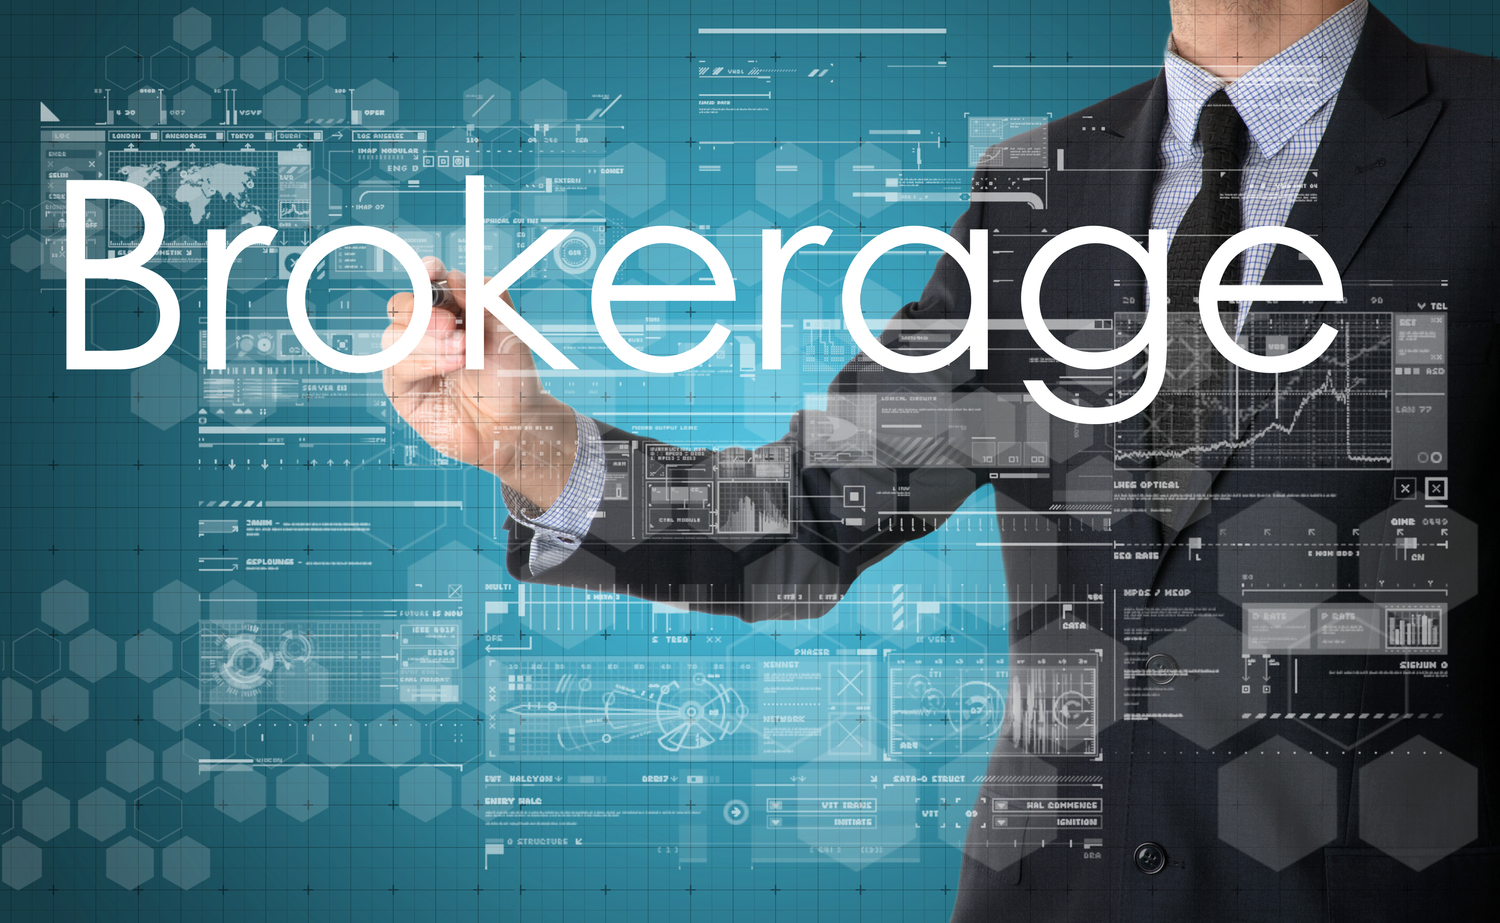 Tips on Starting a Brokerage from Scratch